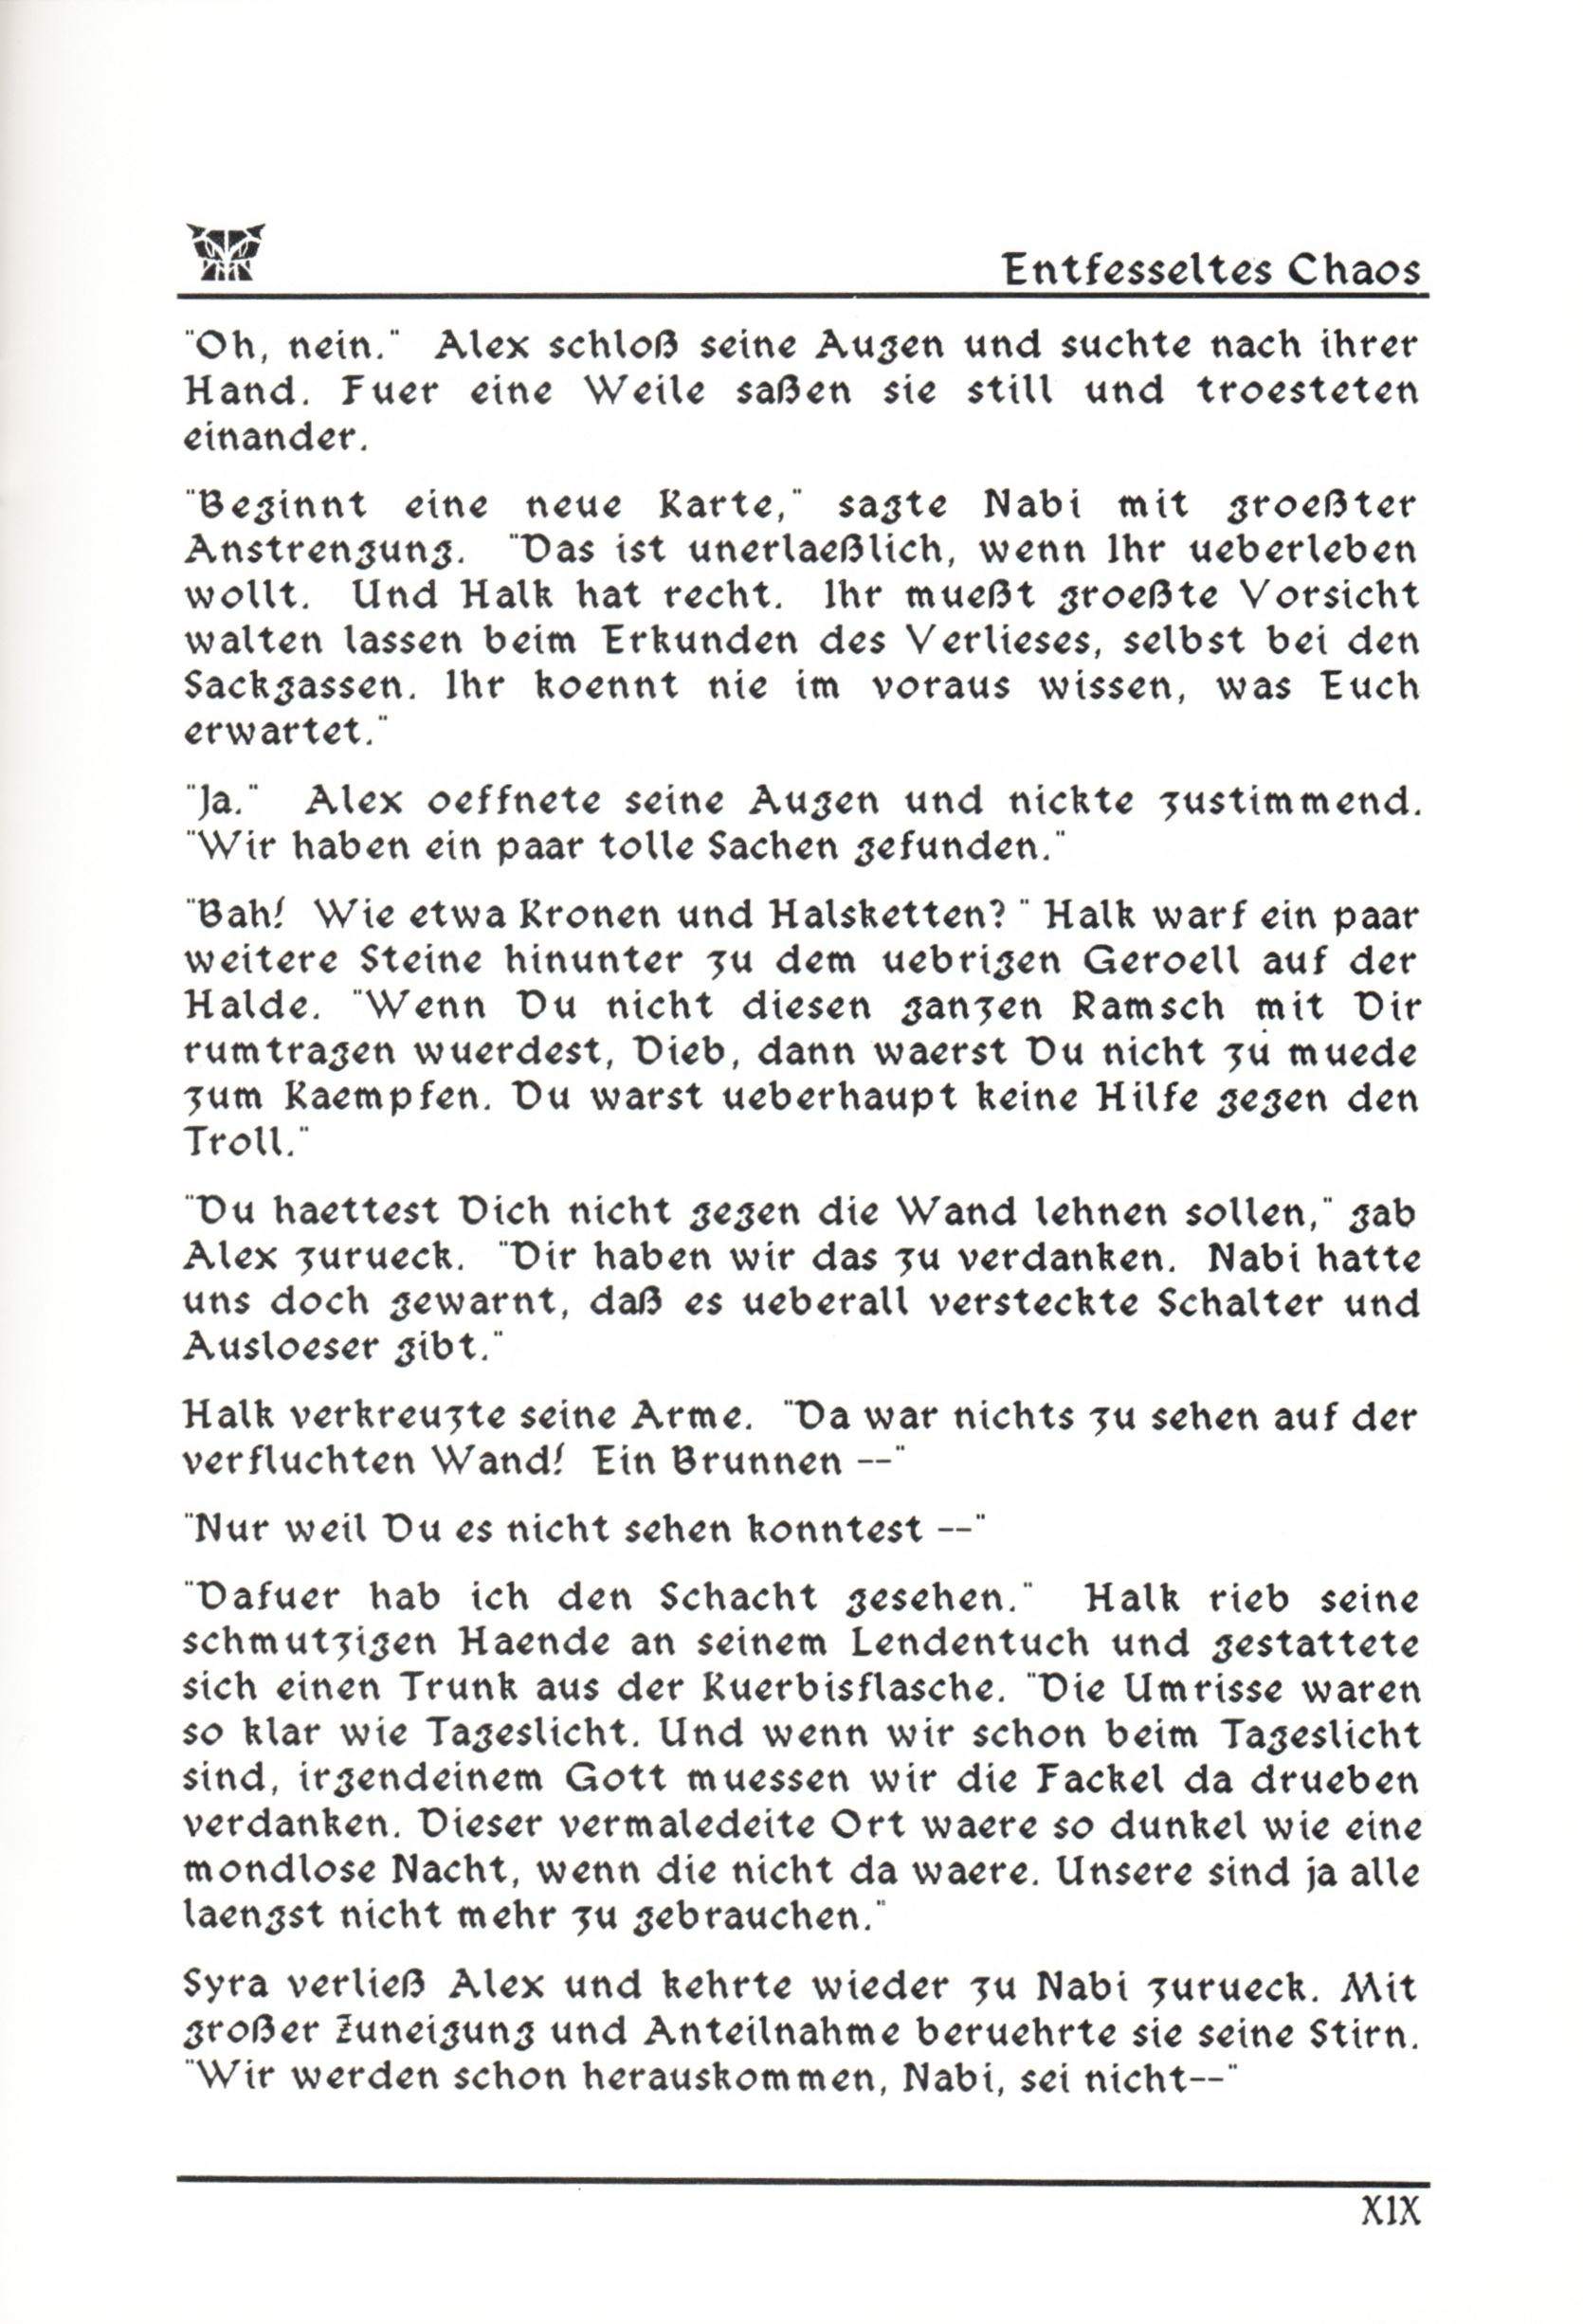 Game - Dungeon Master - DE - PC - Psygnosis - Manual - Page 023 - Scan